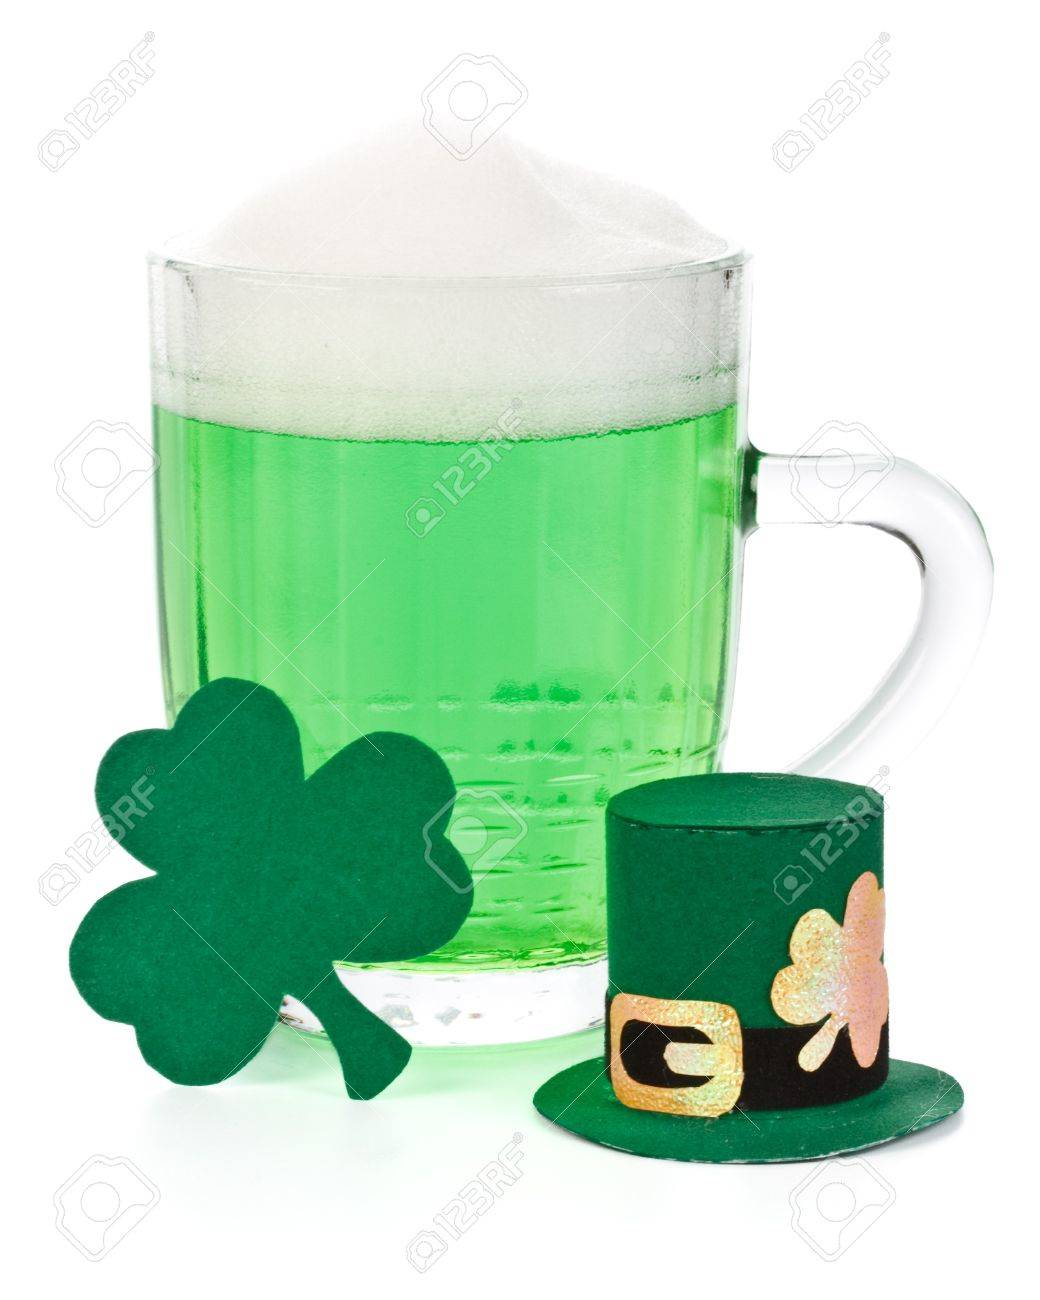 Mug of Green beer, shamrock and Leprechaun hat for St Patrick's Day Stock Photo - 4432588